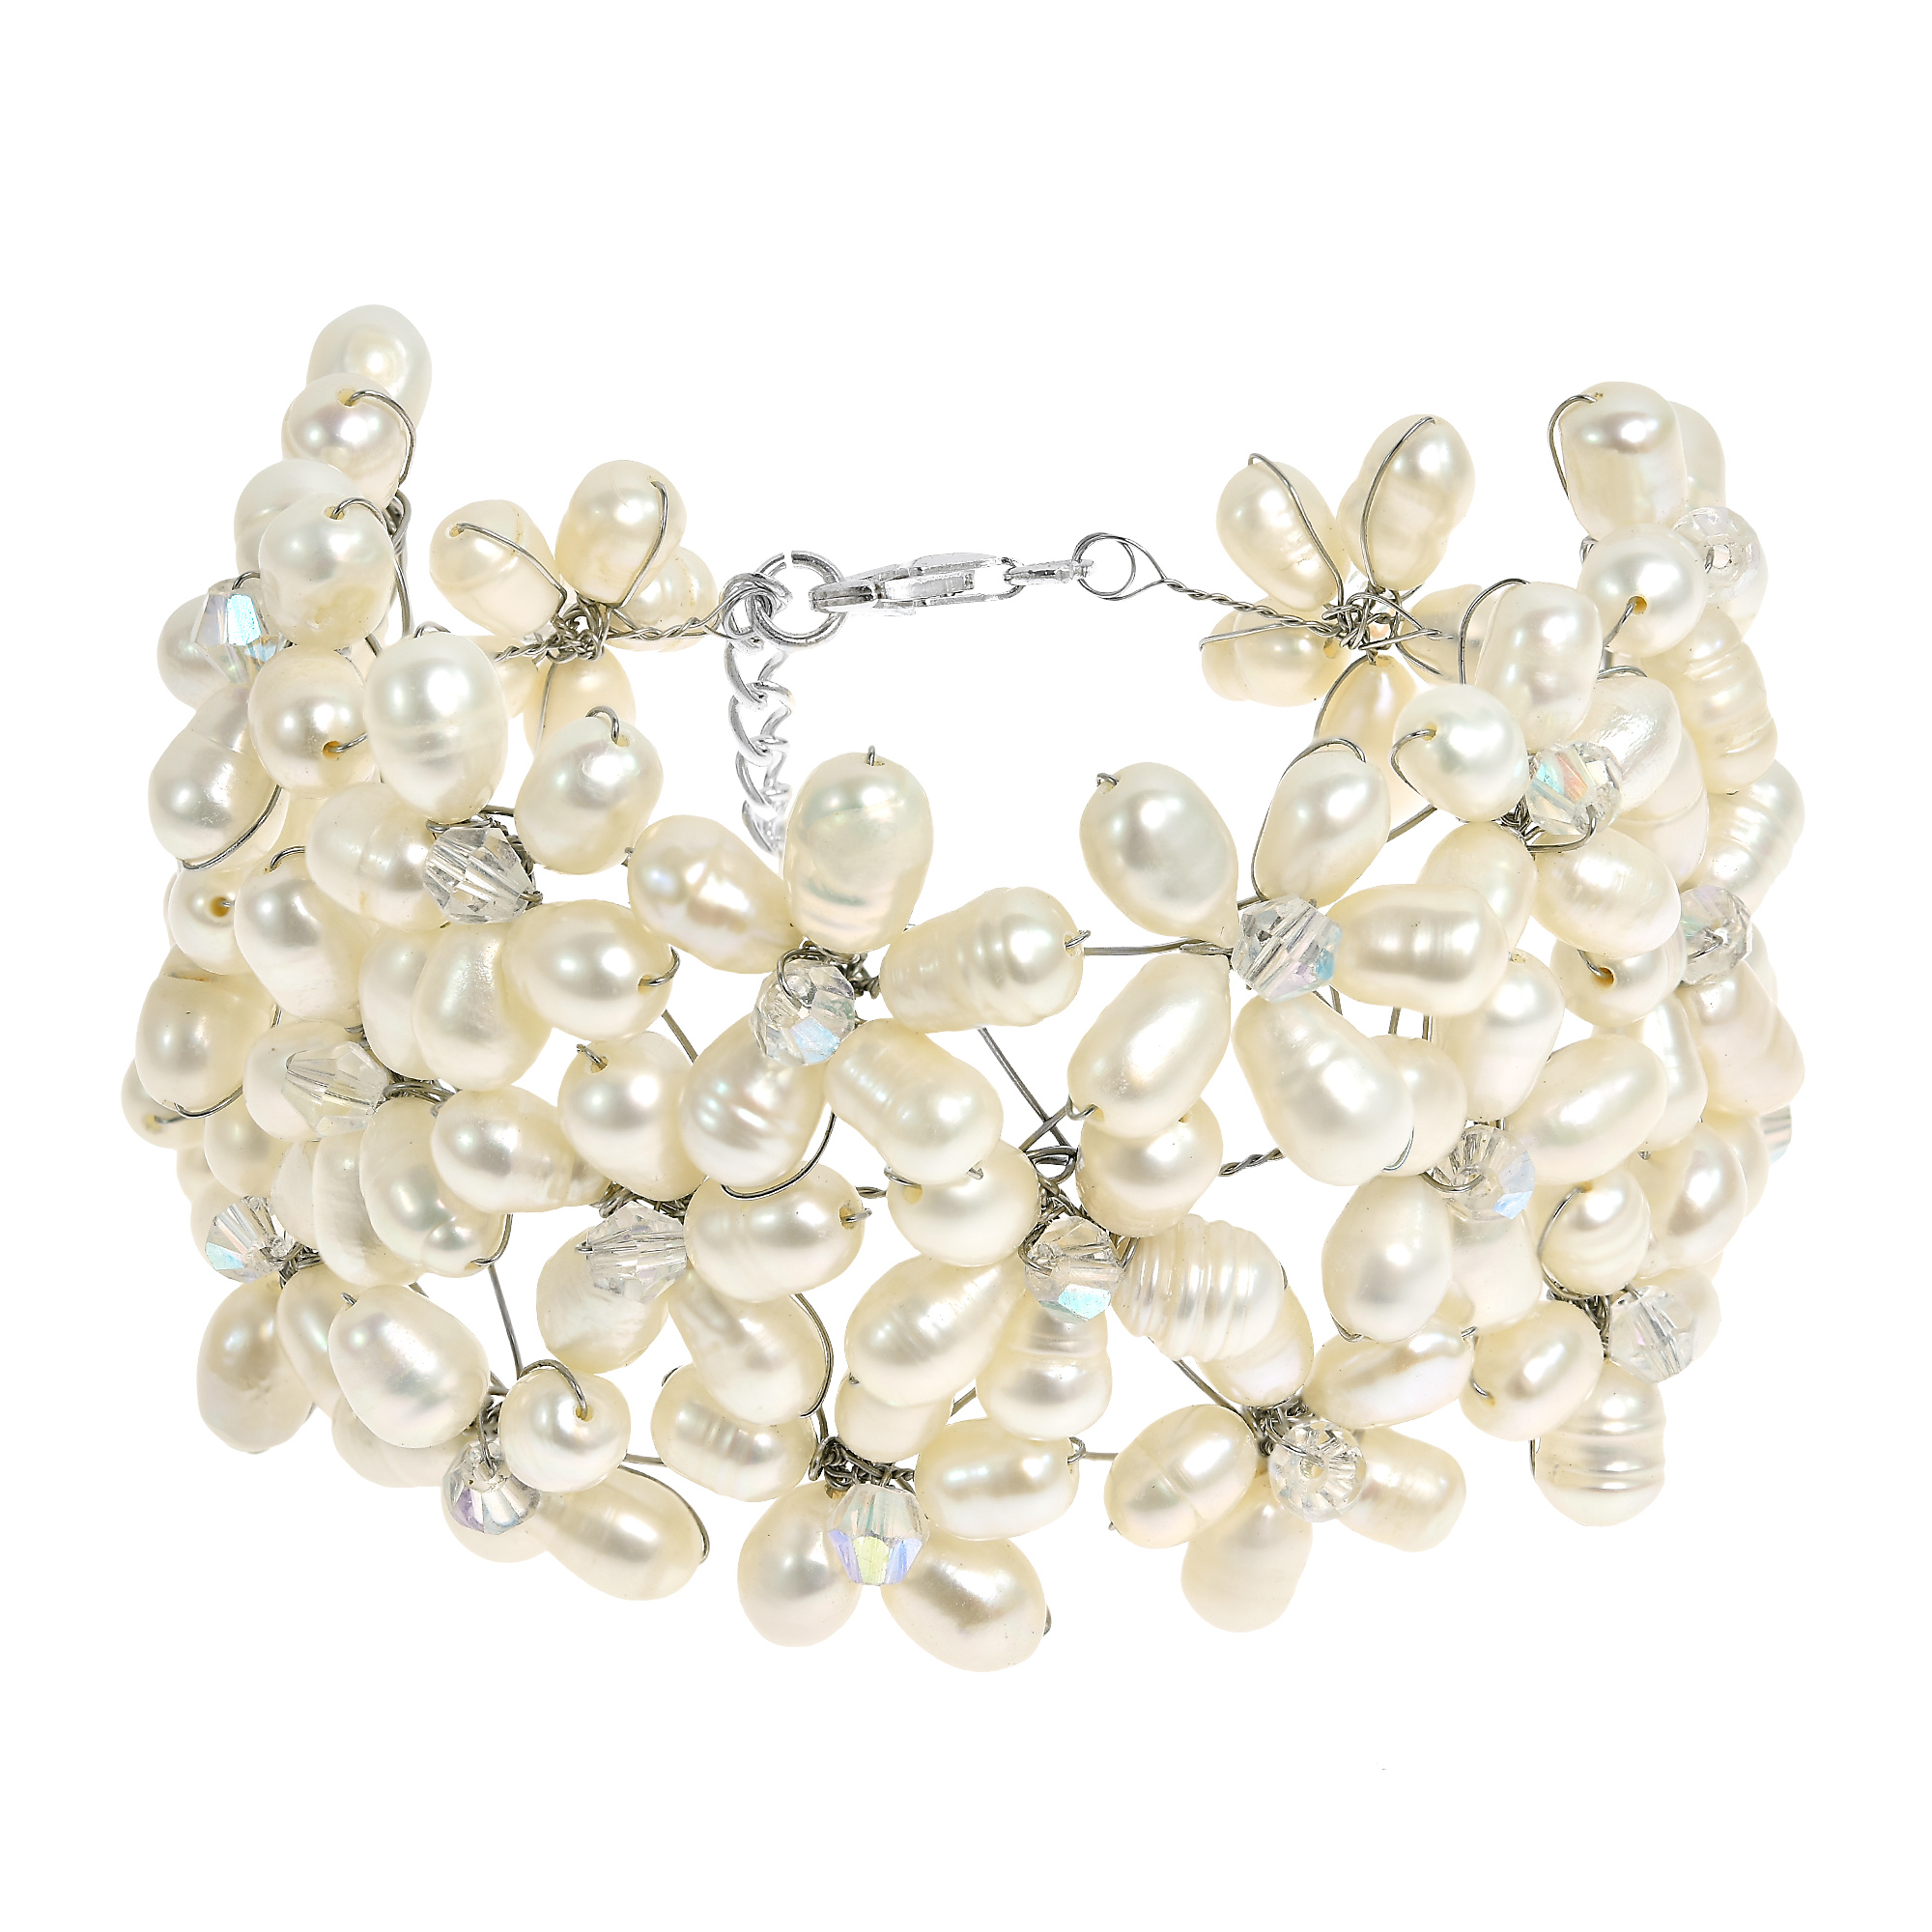 base crystal sophisticated white bracelet metal bracelets in aeravida lai classy products this details made artisan and was flower features of a pearl motif bs thailand proficient handmade wht by stone